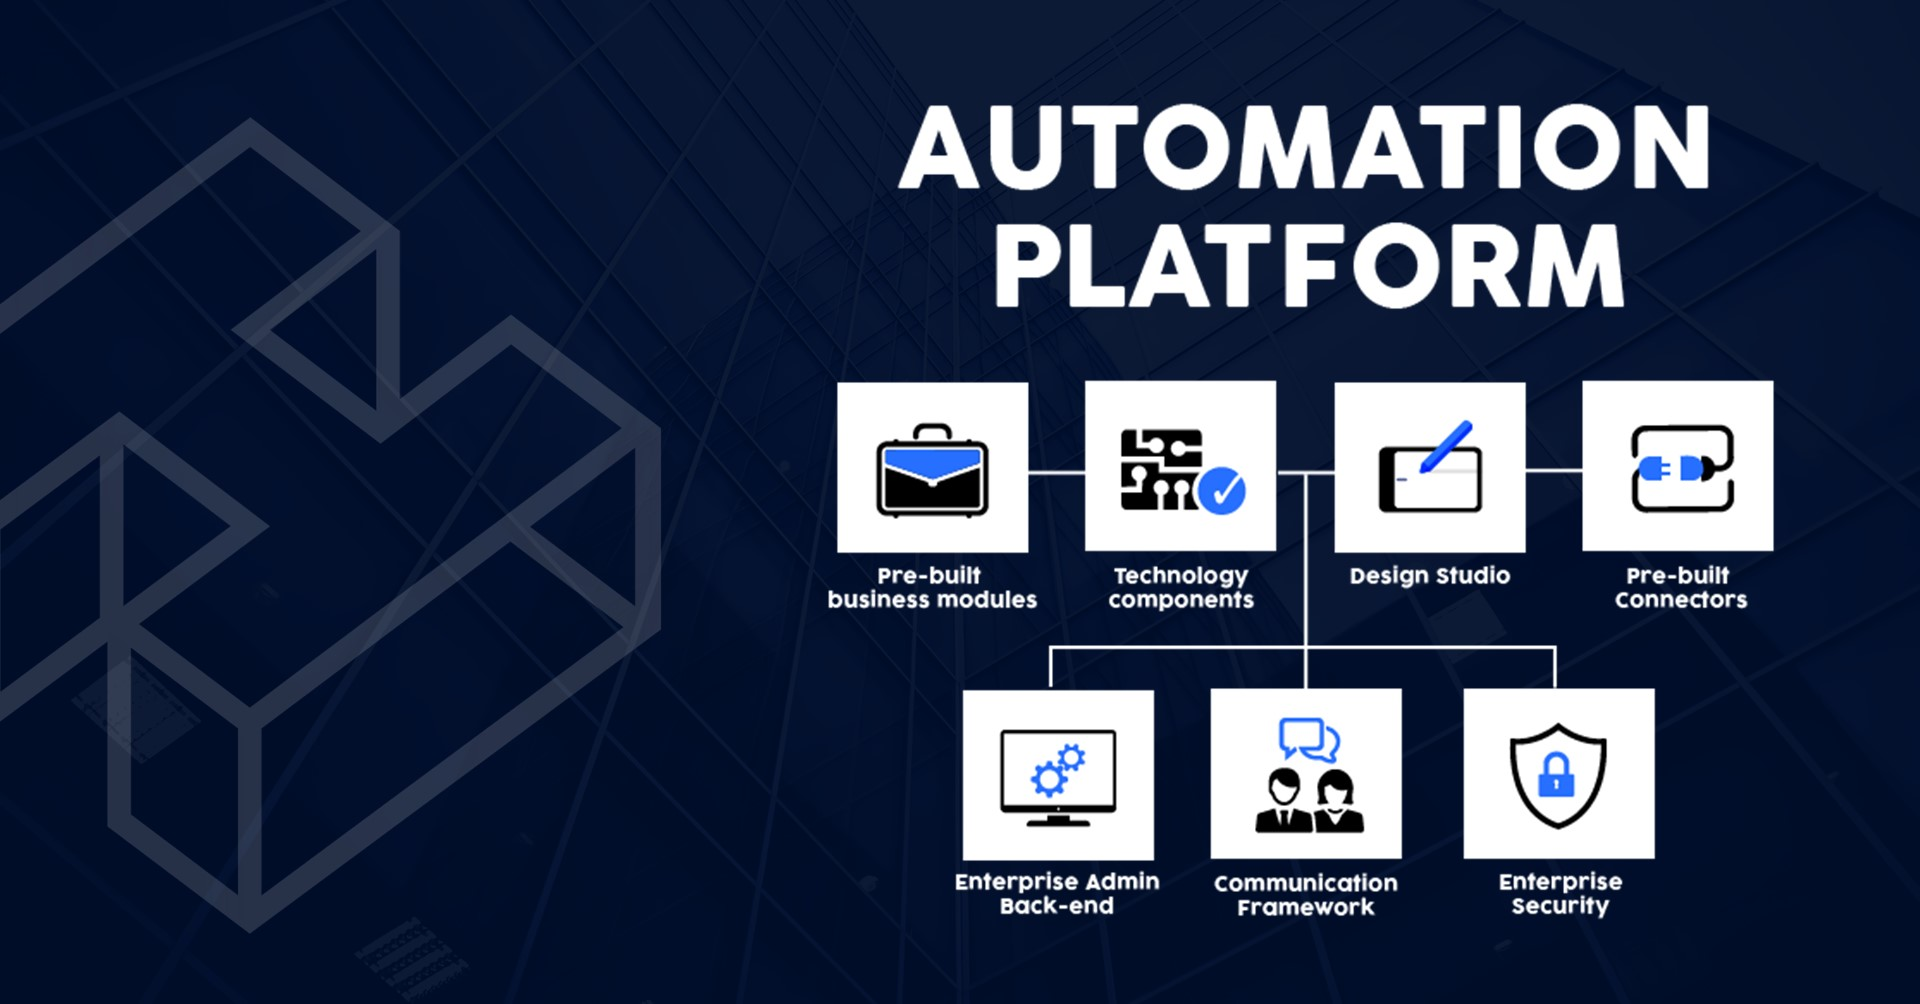 HokuApps Automation Pillars help Deploy Technology Solutions in Weeks